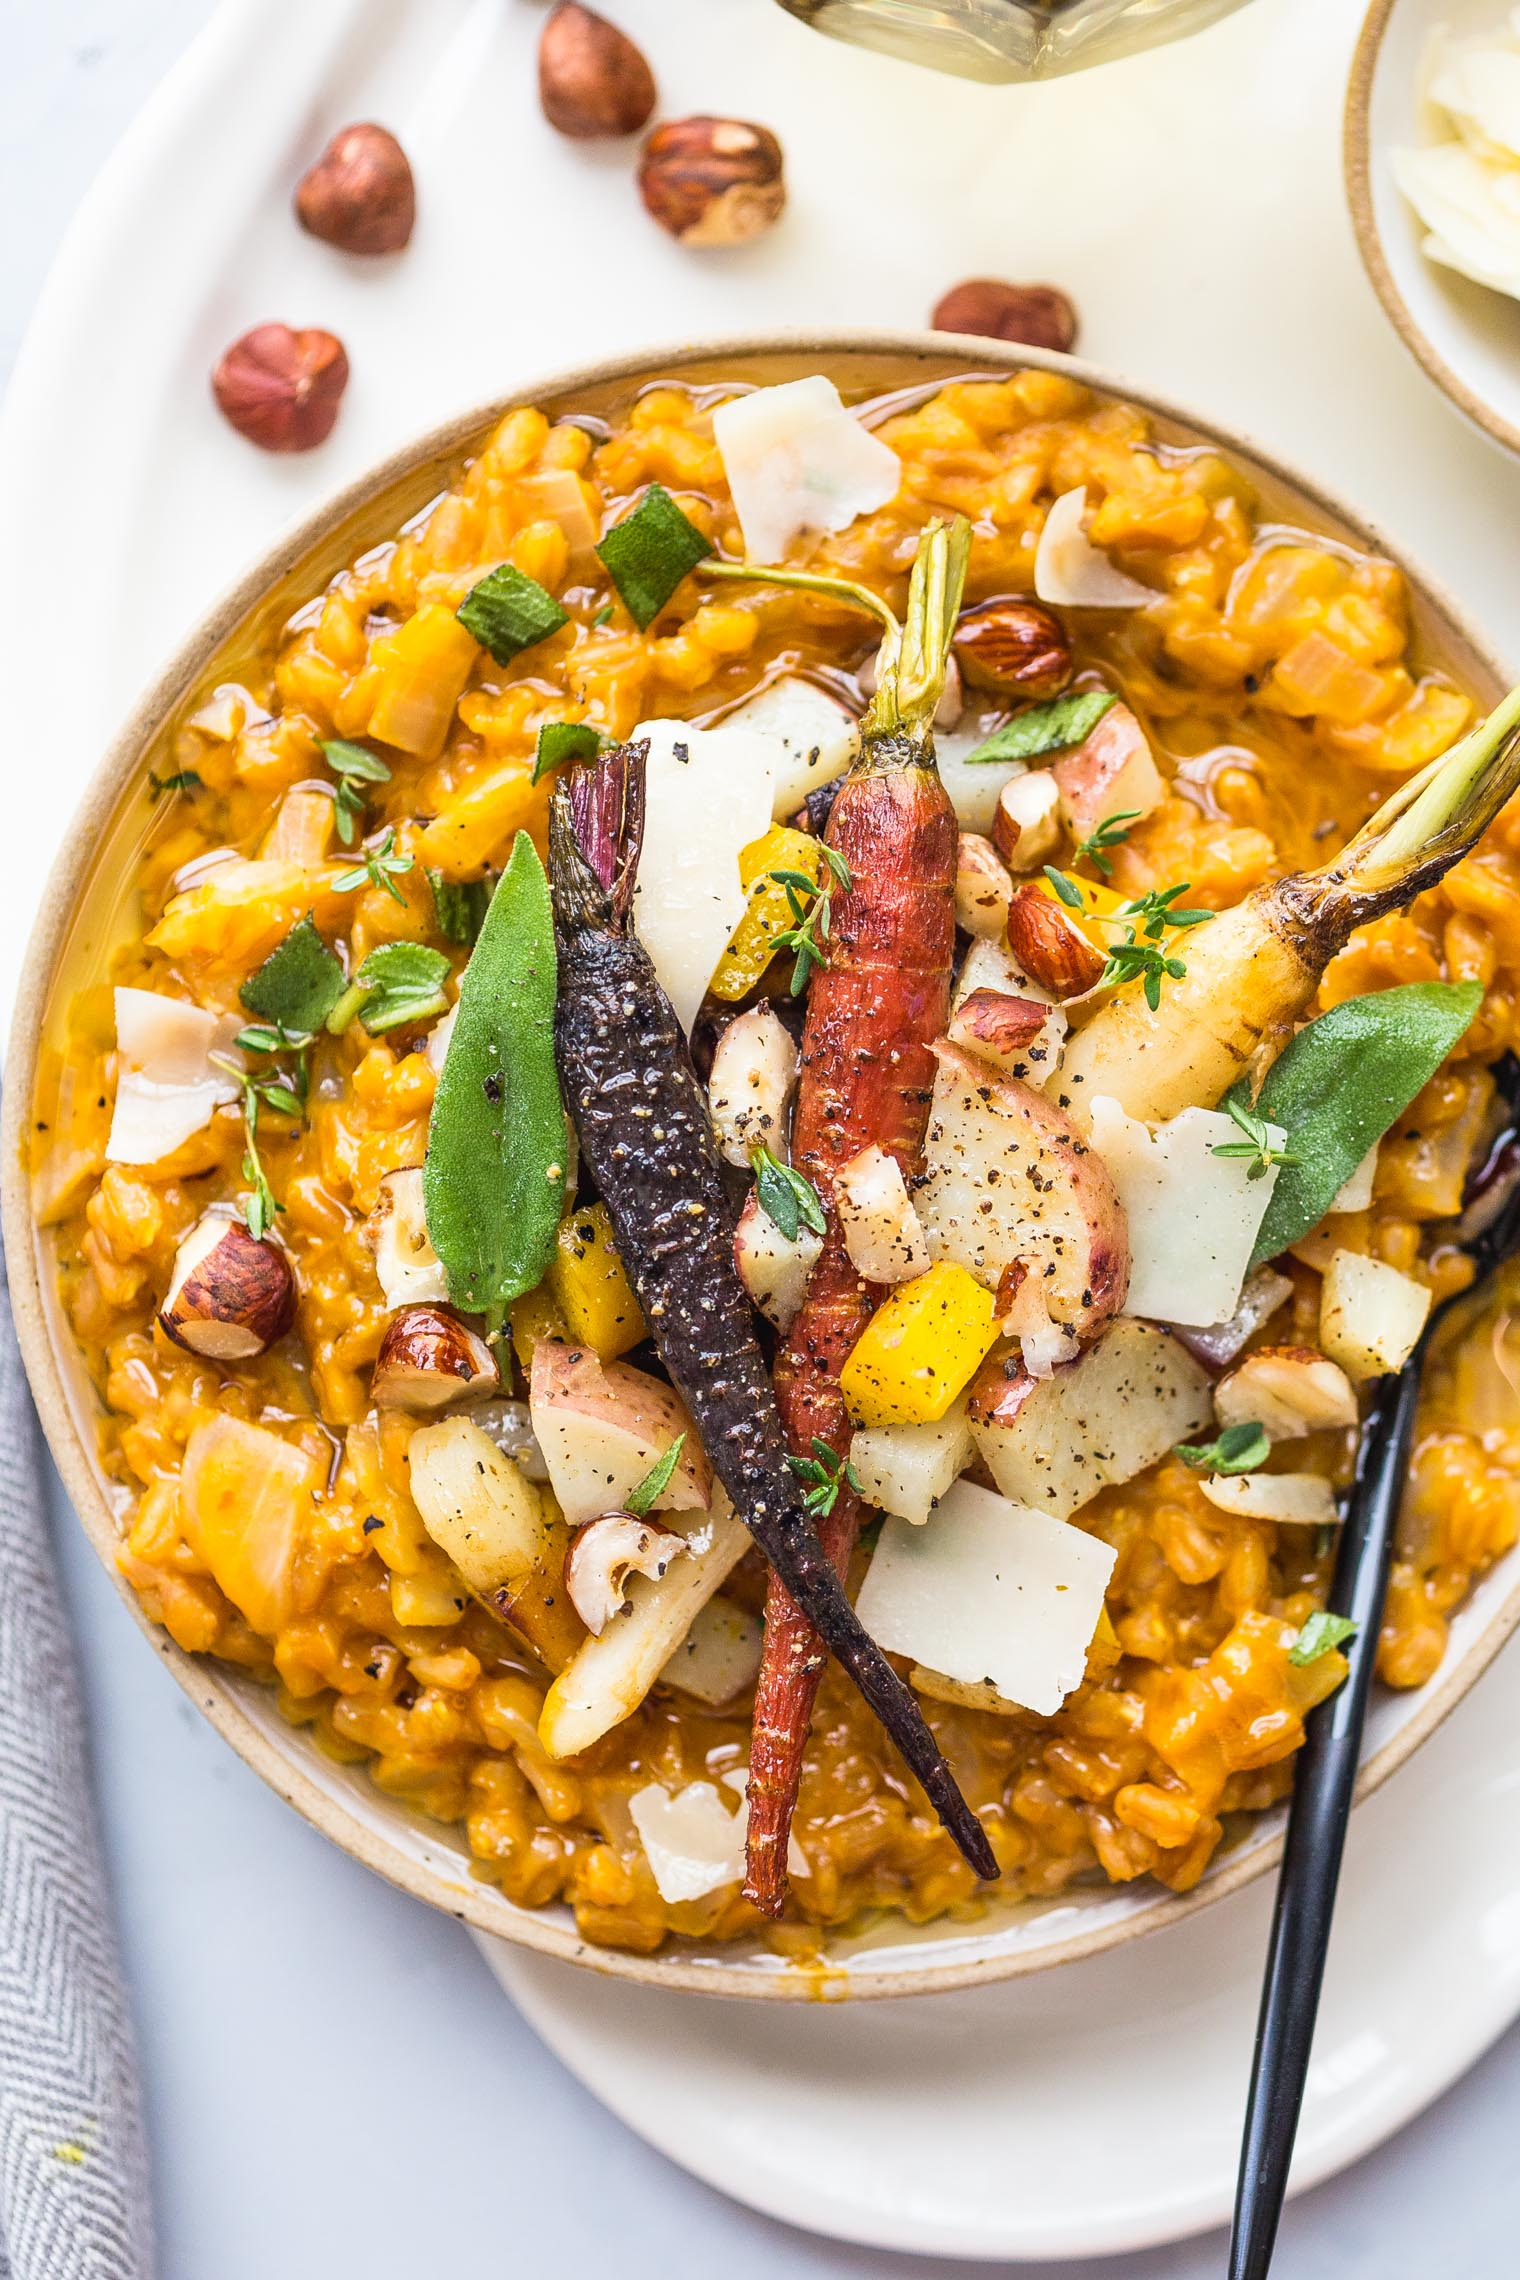 15 Easy Vegetarian Recipes To Get You Eating More Vegetables